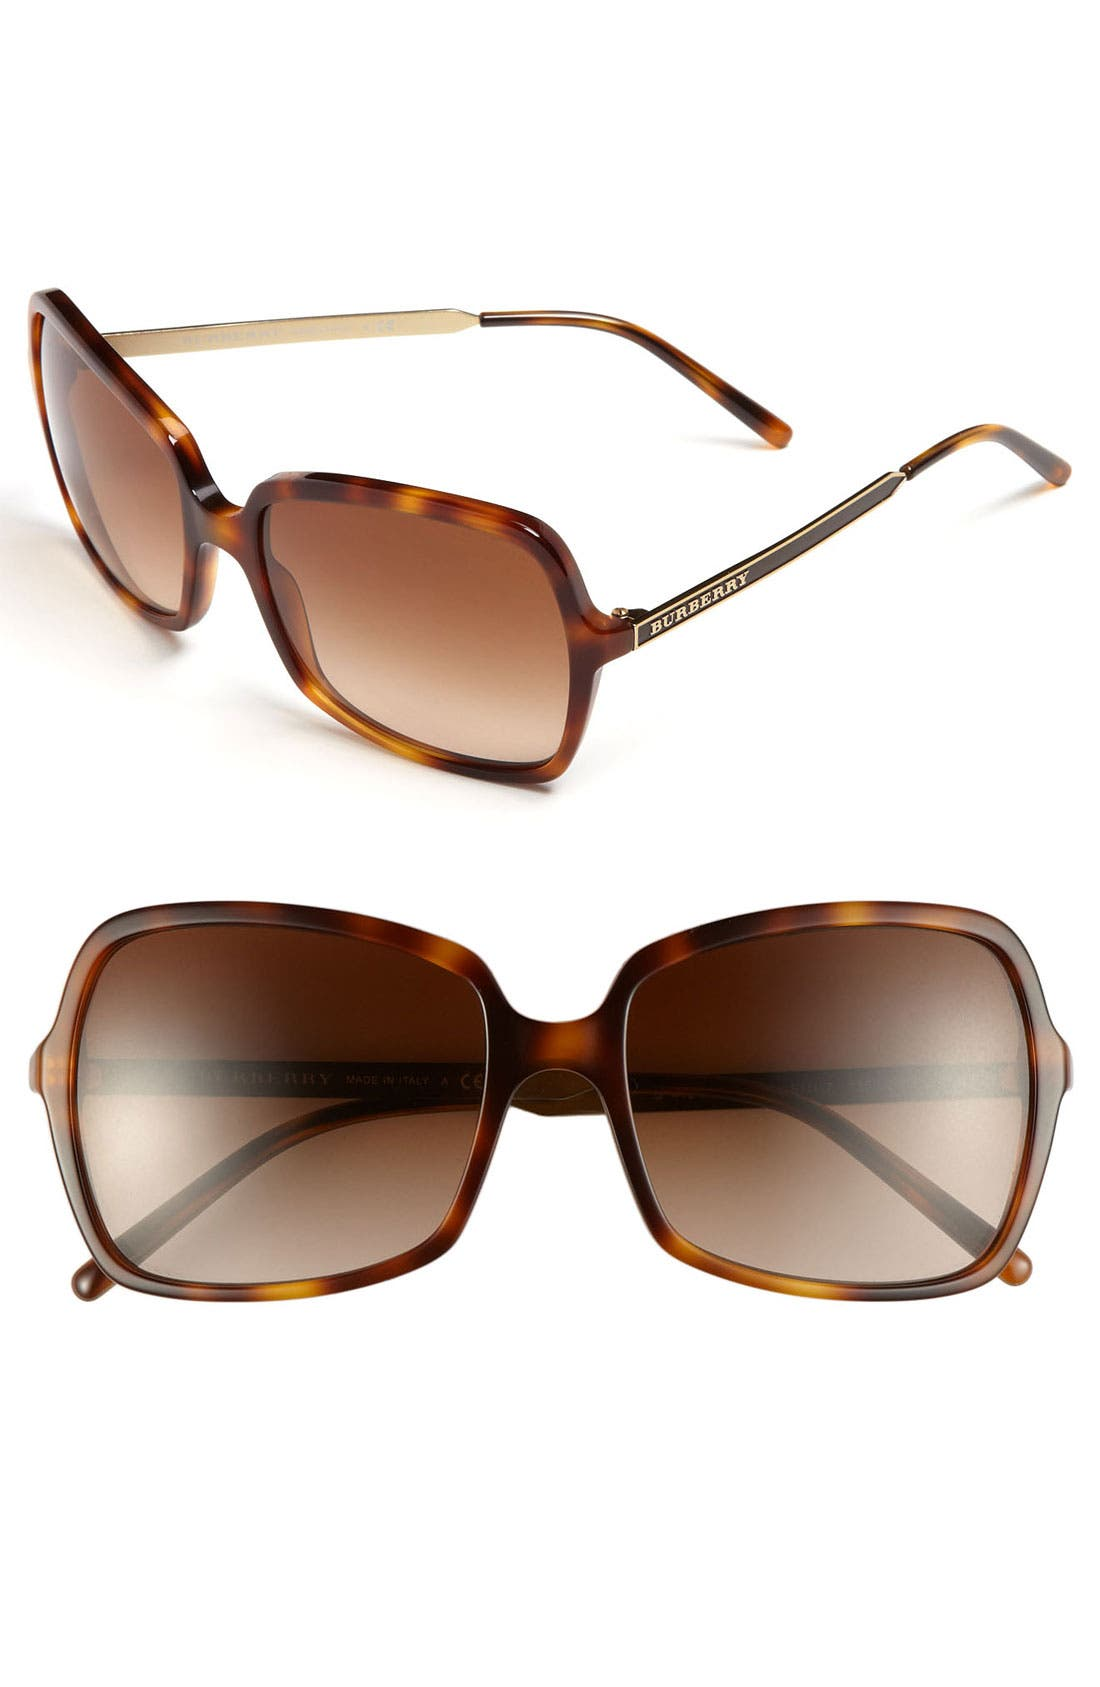 Main Image - Burberry Butterfly 57mm Sunglasses